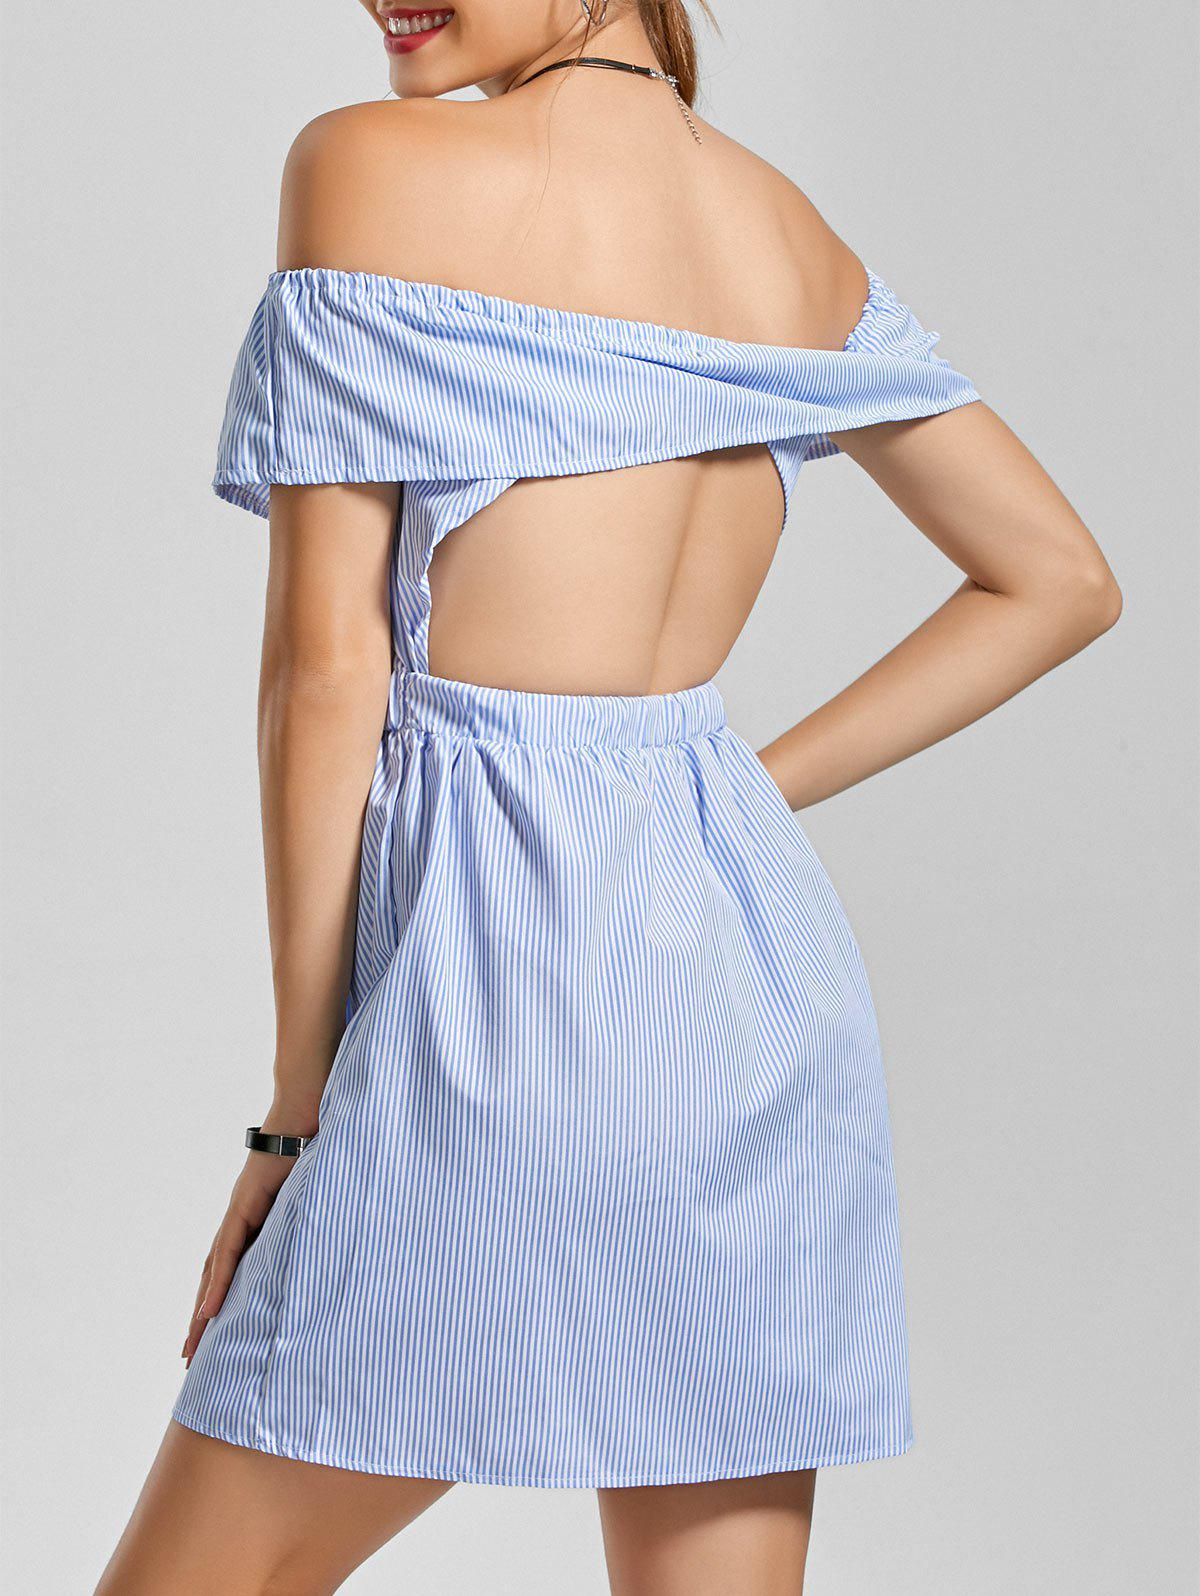 Off The Shoulder Stripe Ruffle Cut Out Dress - Bleu Léger S